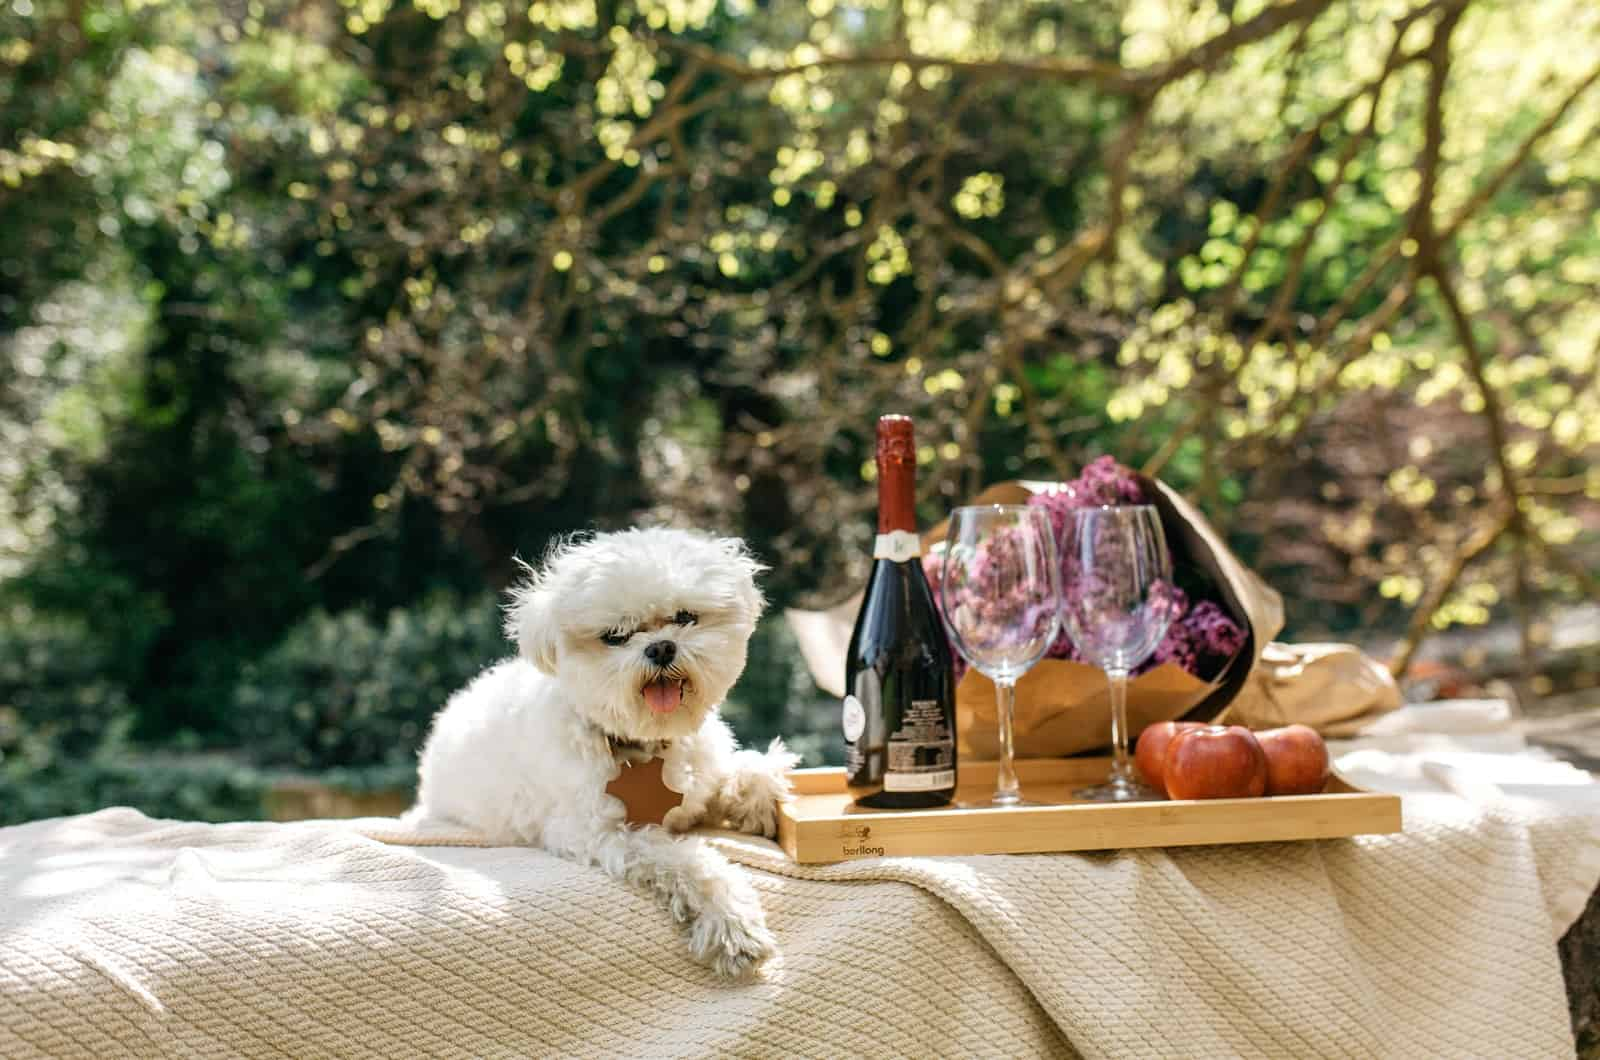 maltese posing next to champagne and glasses